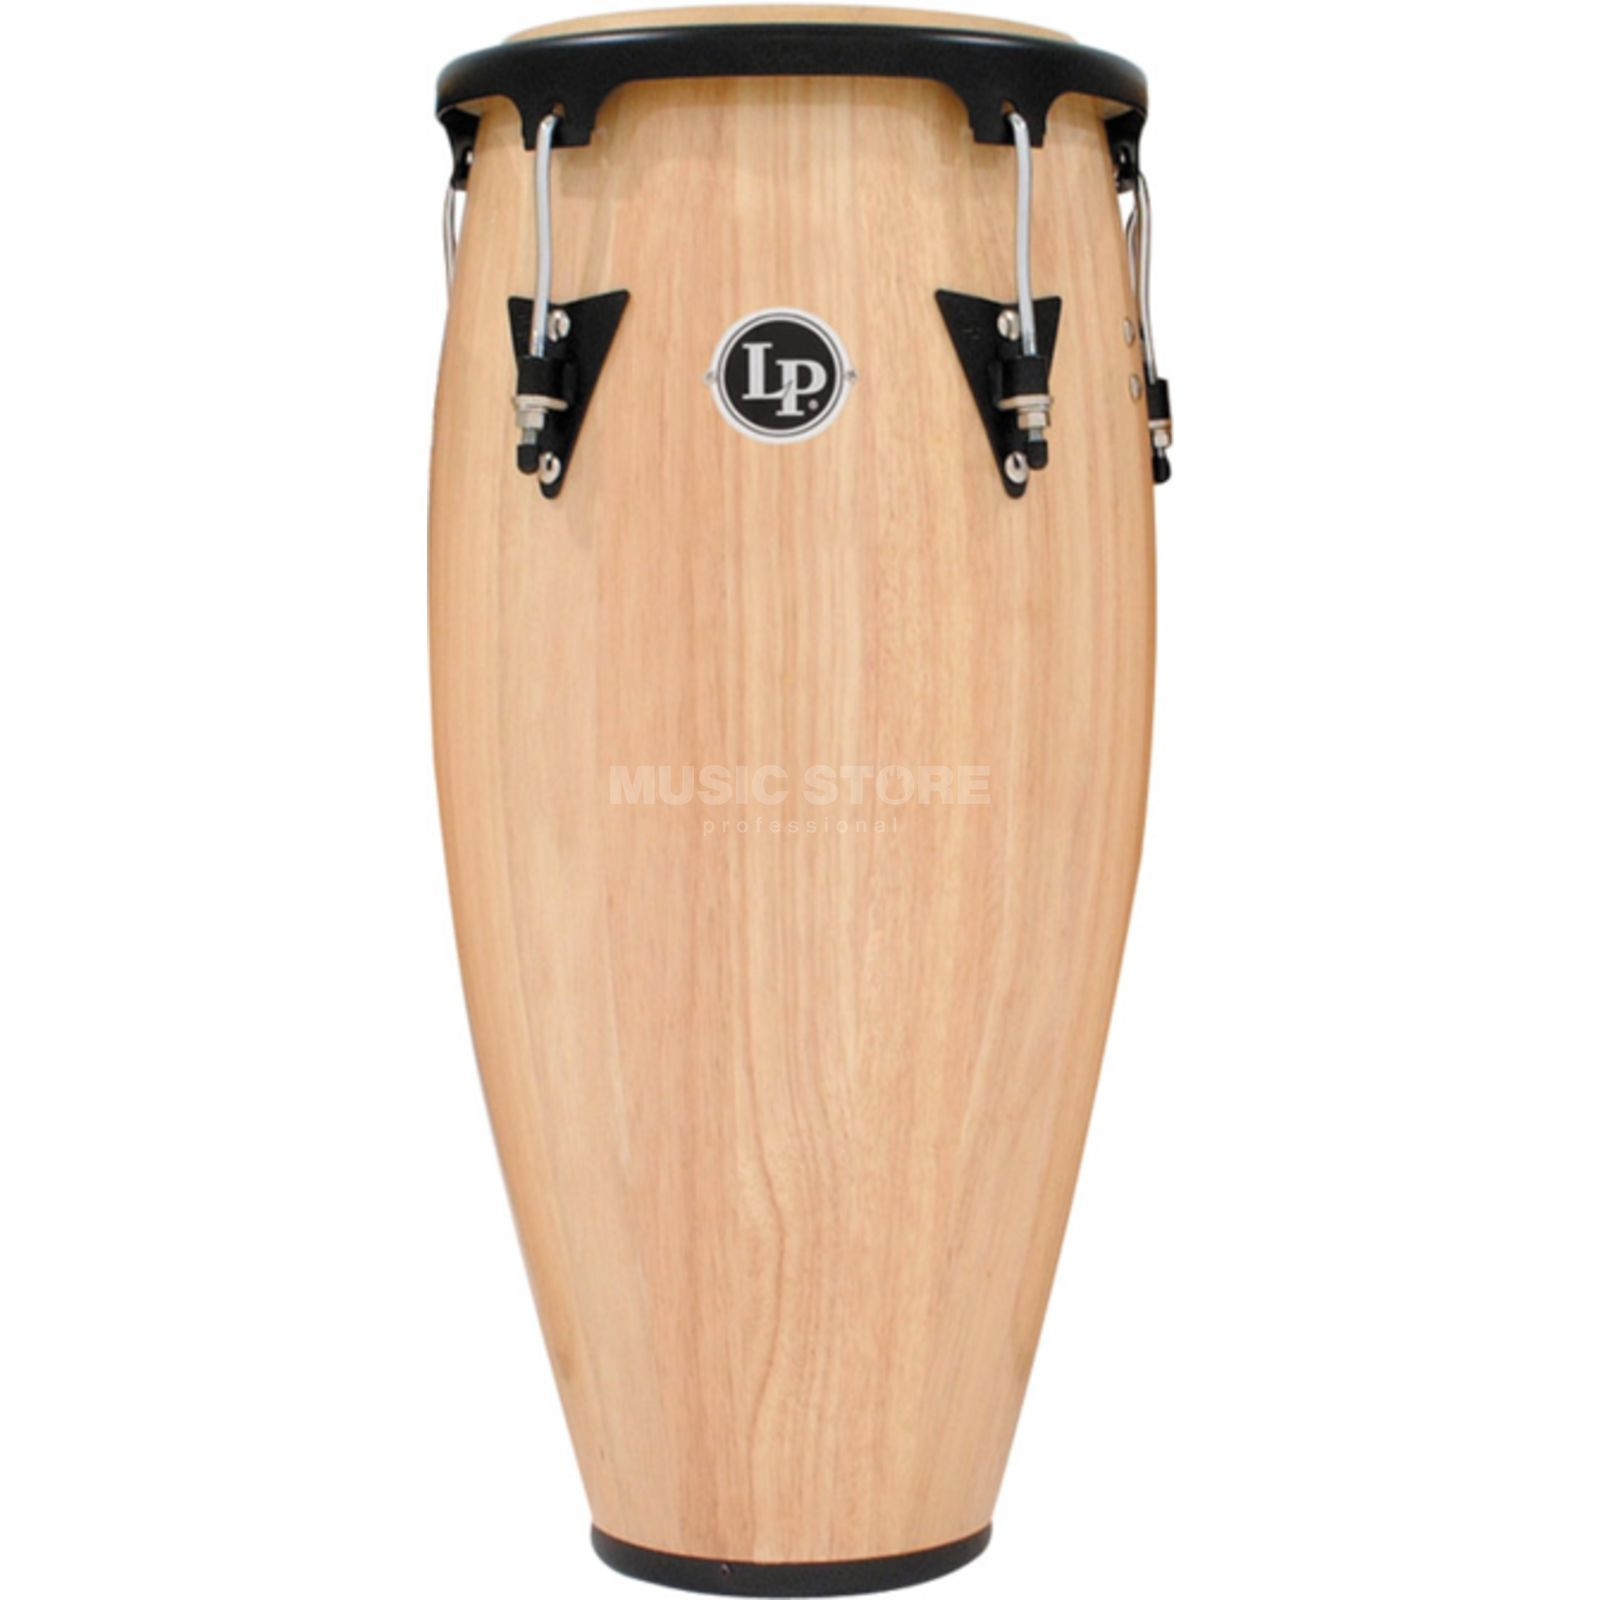 "Latin Percussion Aspire Conga LPA612-AW, 12"" Tumba, Natural Wood #AW Produktbild"